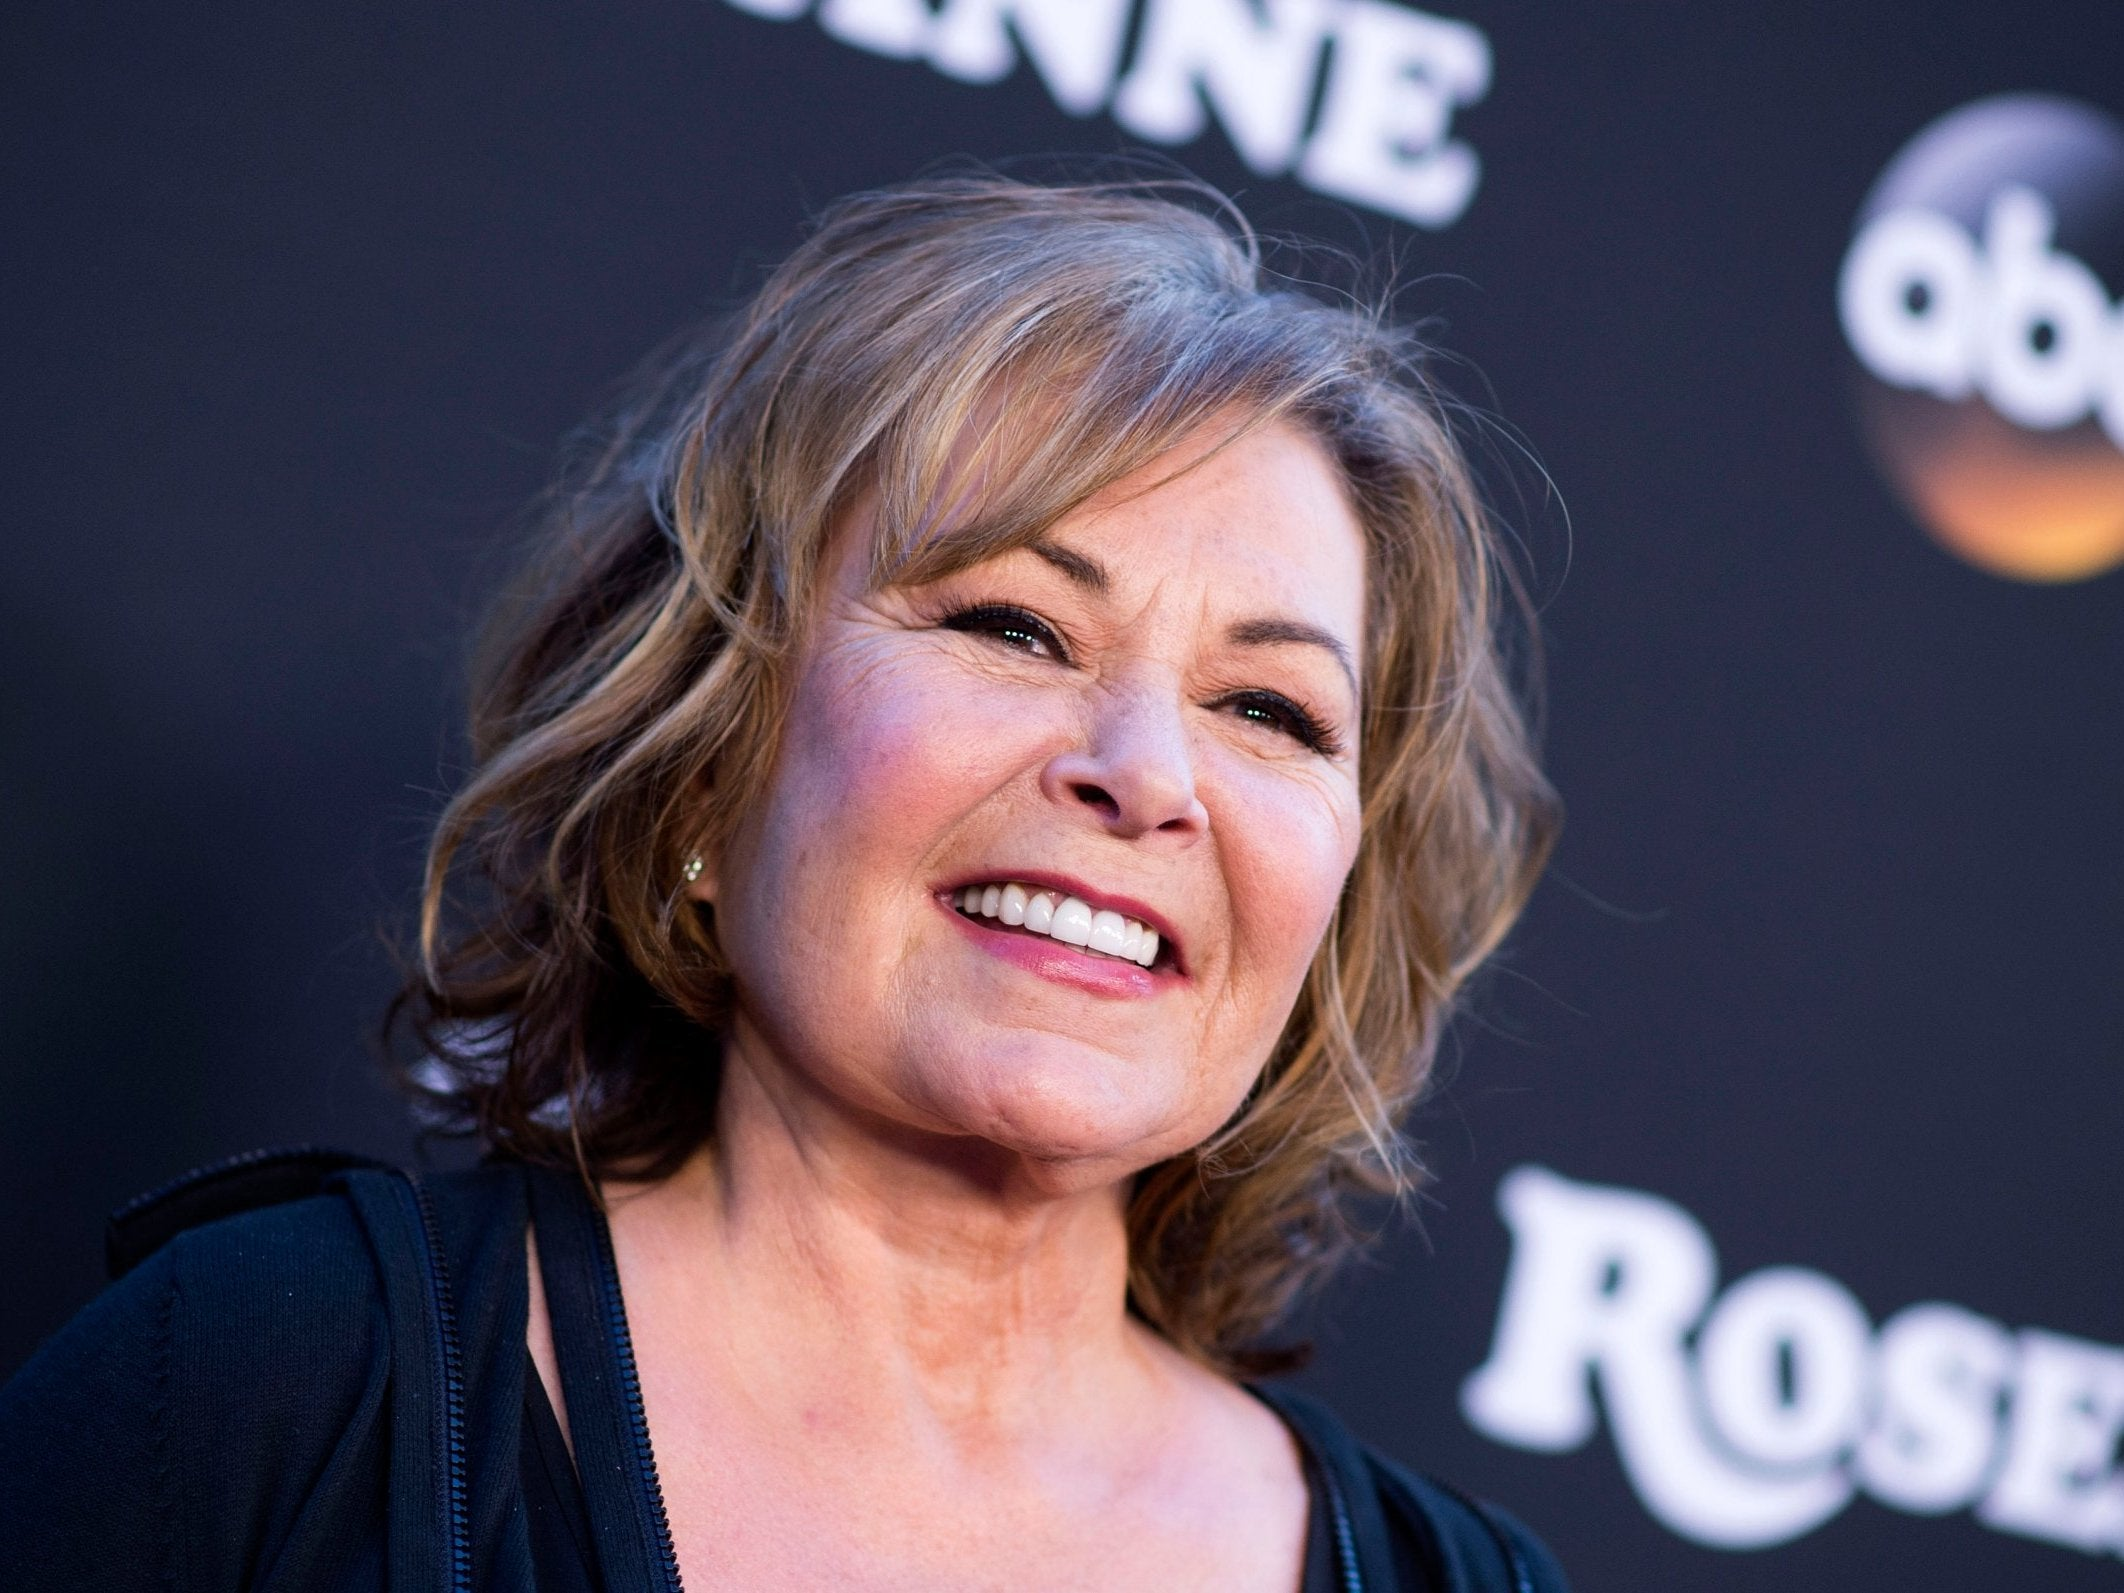 Roseanne Barr accuses ABC of 'stealing her life's work' after she was fired for racist tweet